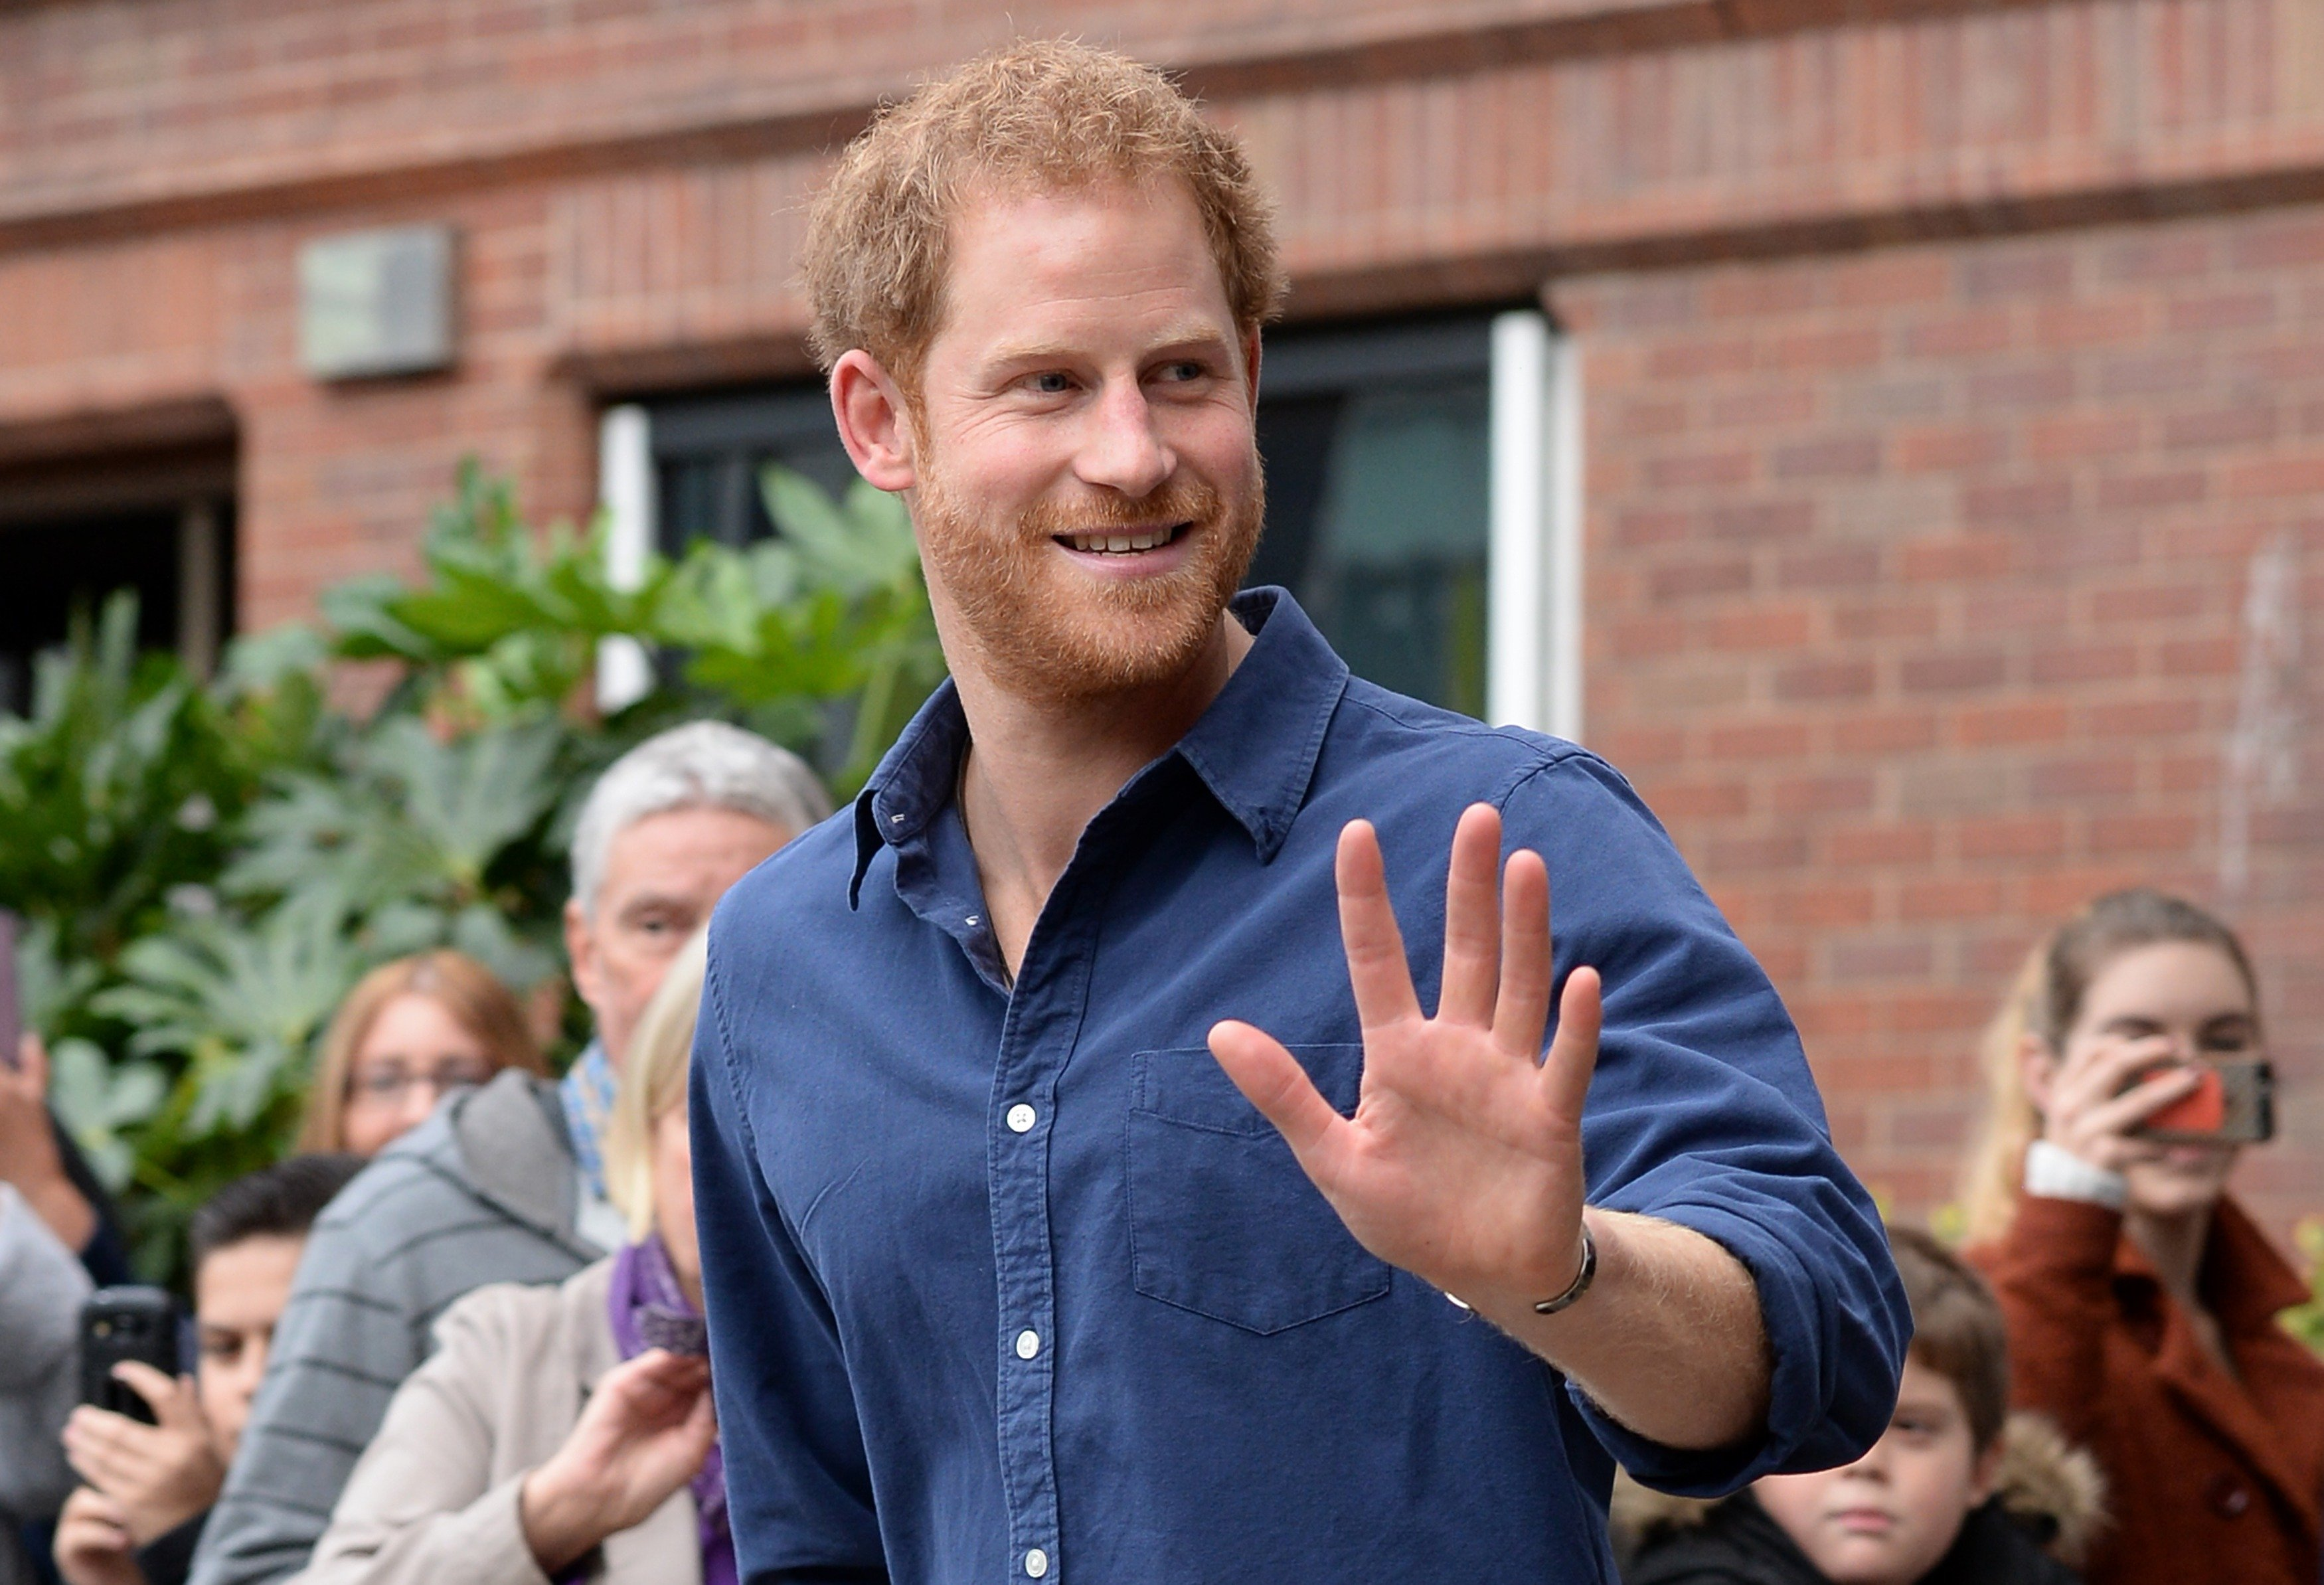 Prince Harry pictured leaving Nottingham Central Police Station, 2016, Nottingham, England. | Photo: Getty Images